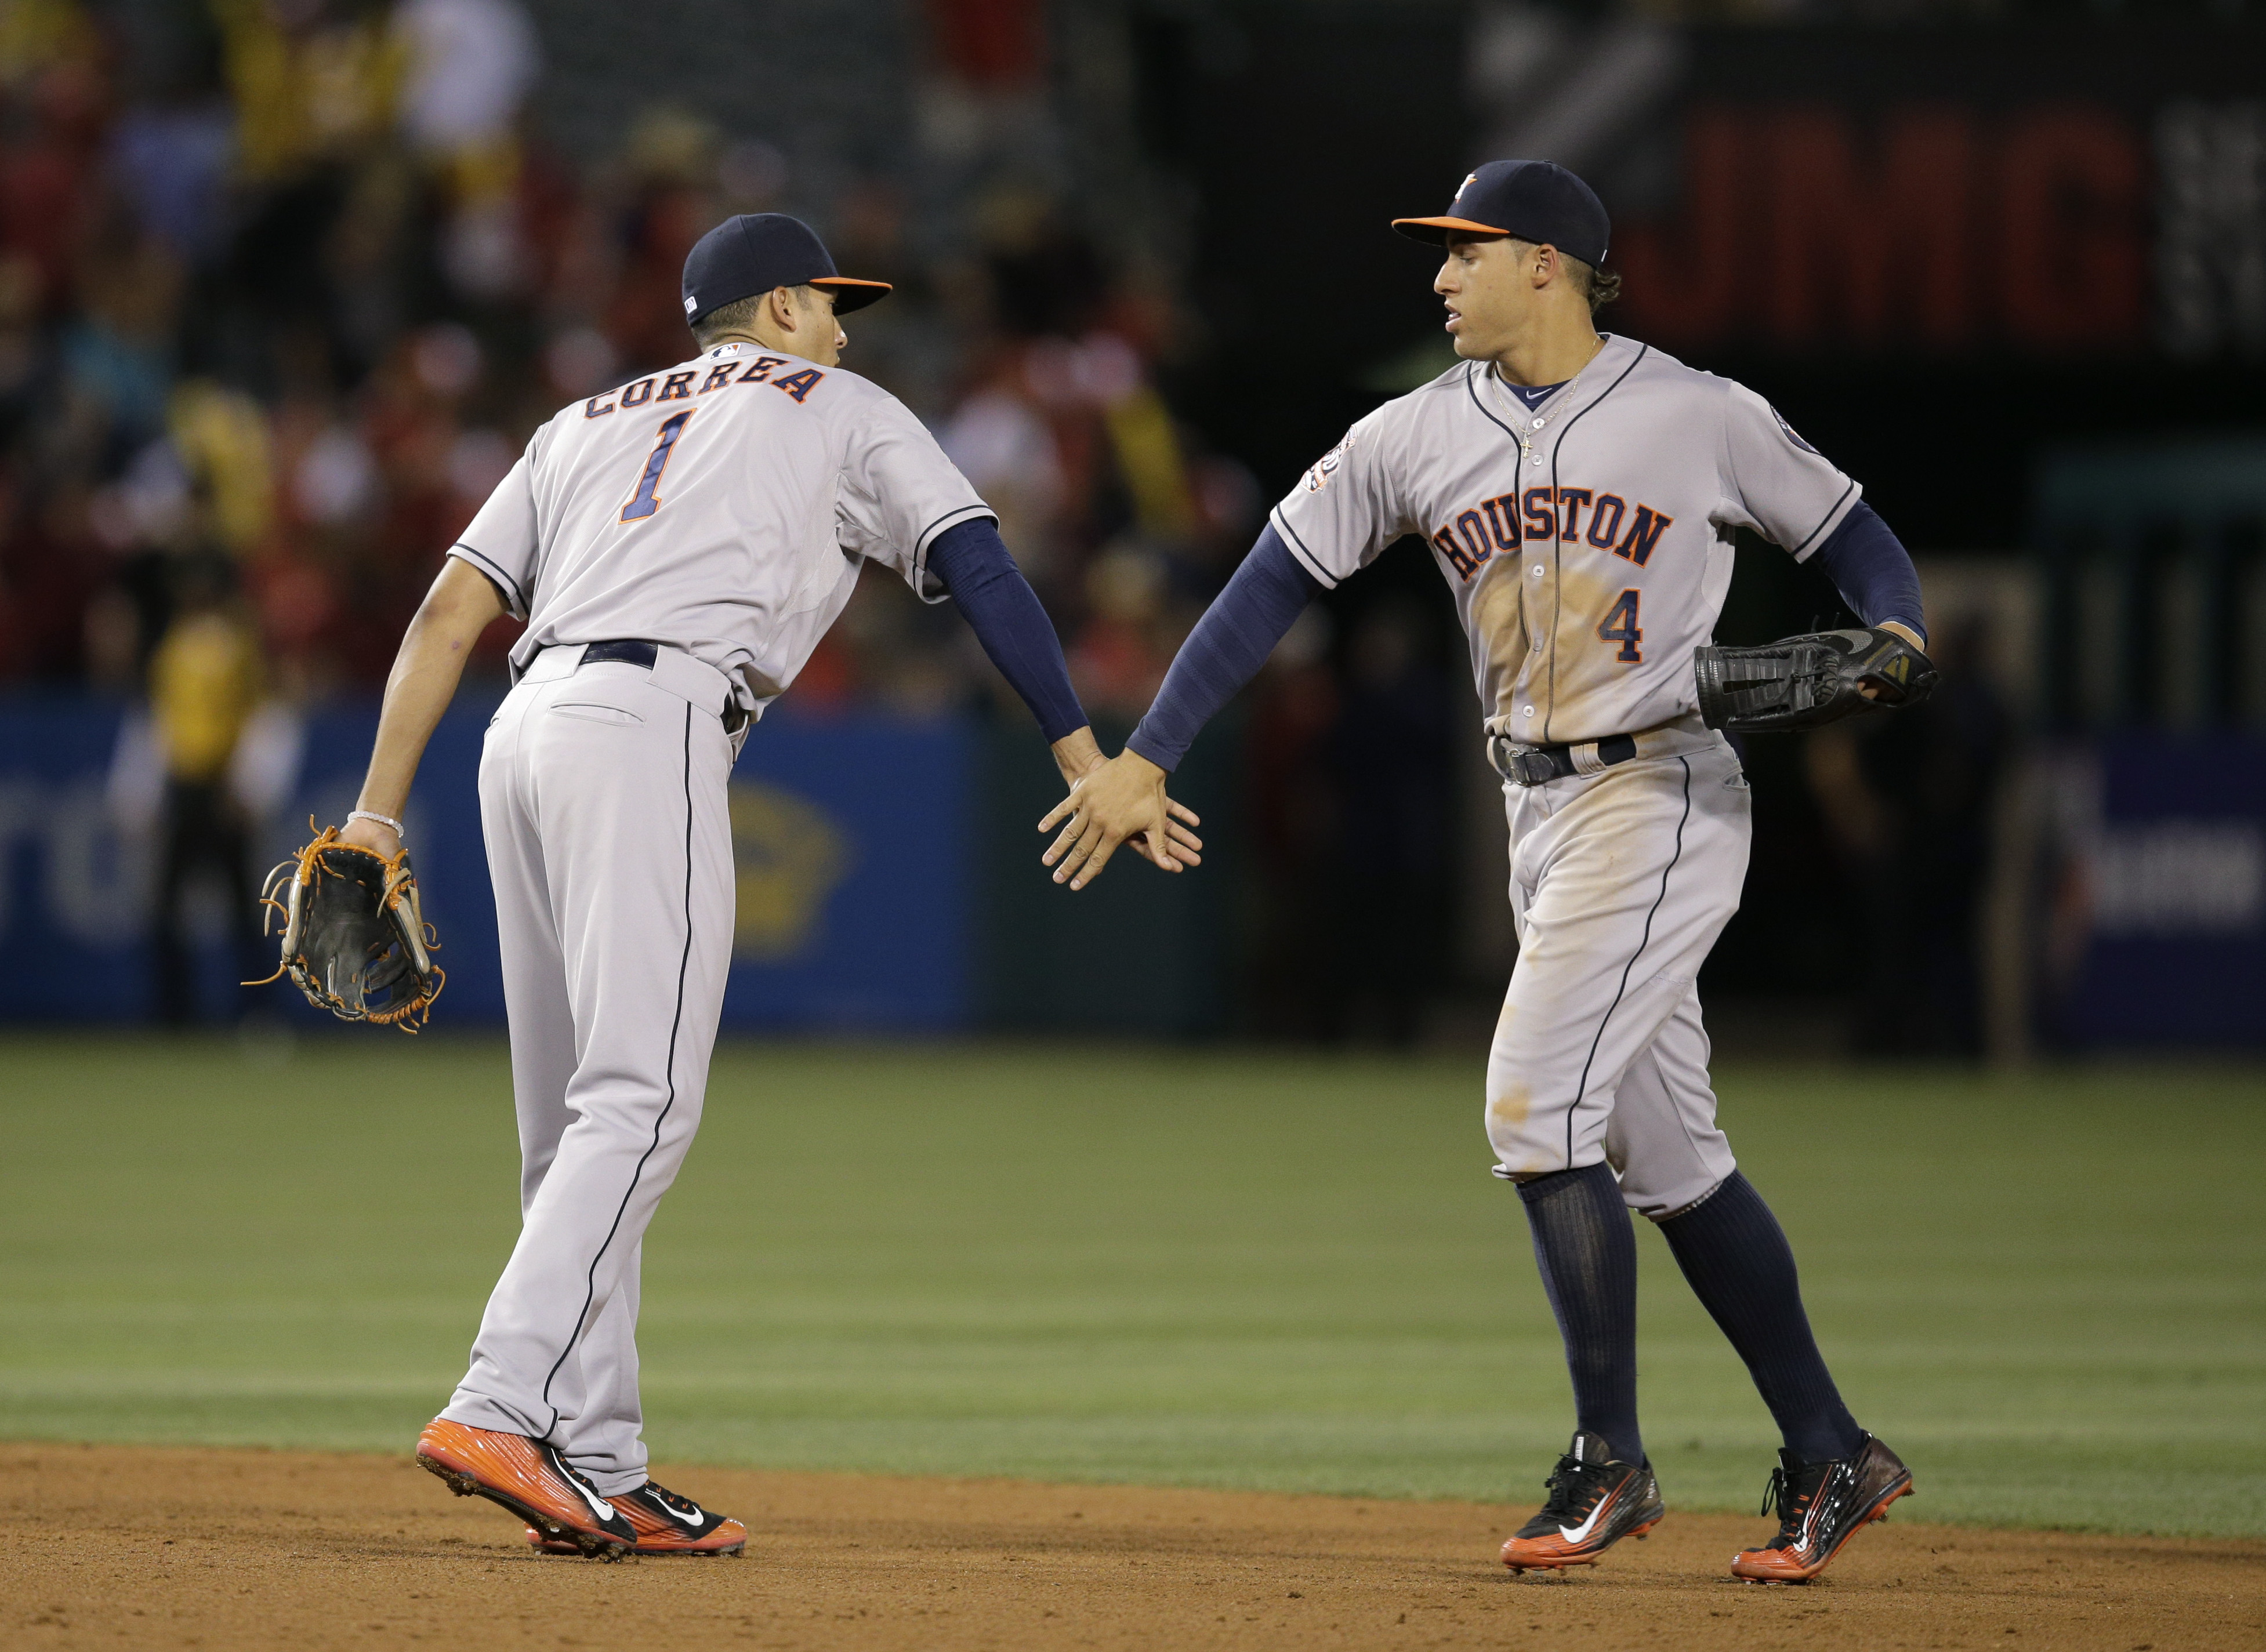 Houston Astros' Carlos Correa, left, and George Springer celebrate the team's 13-3 win against the Los Angeles Angels in a baseball game, Tuesday, June 23, 2015, in Anaheim, Calif. (AP Photo/Jae C. Hong)